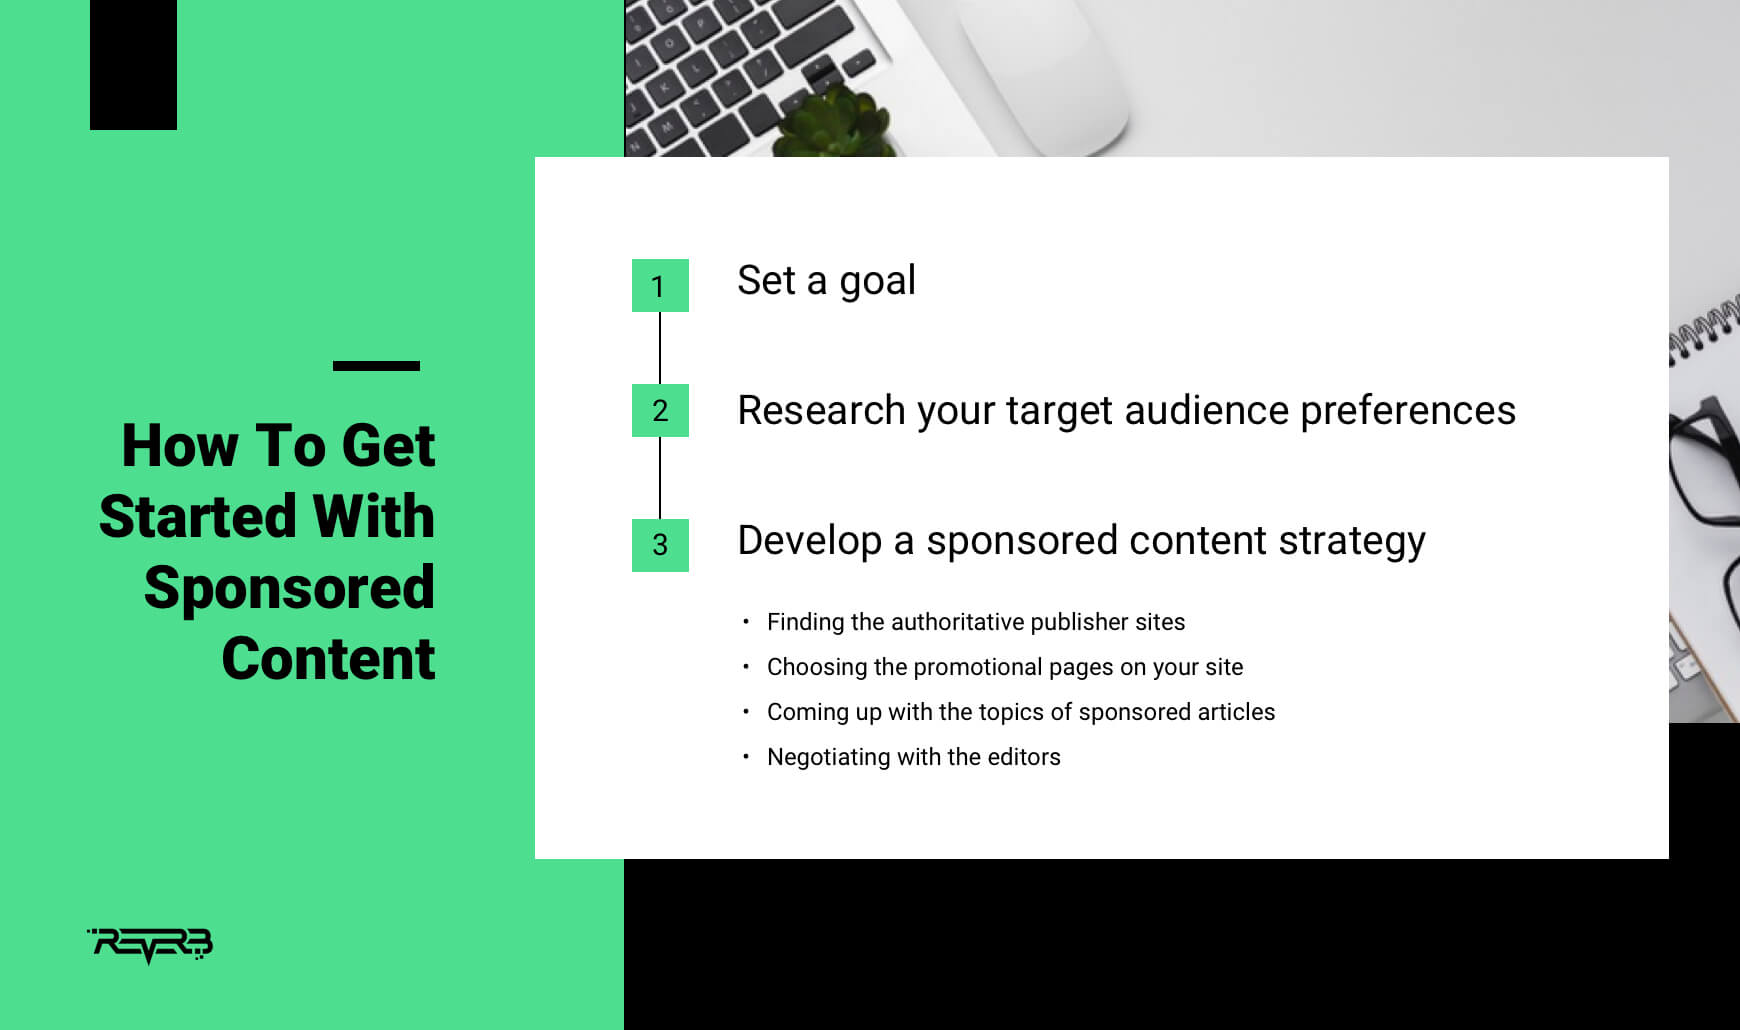 how to get started with sponsored content